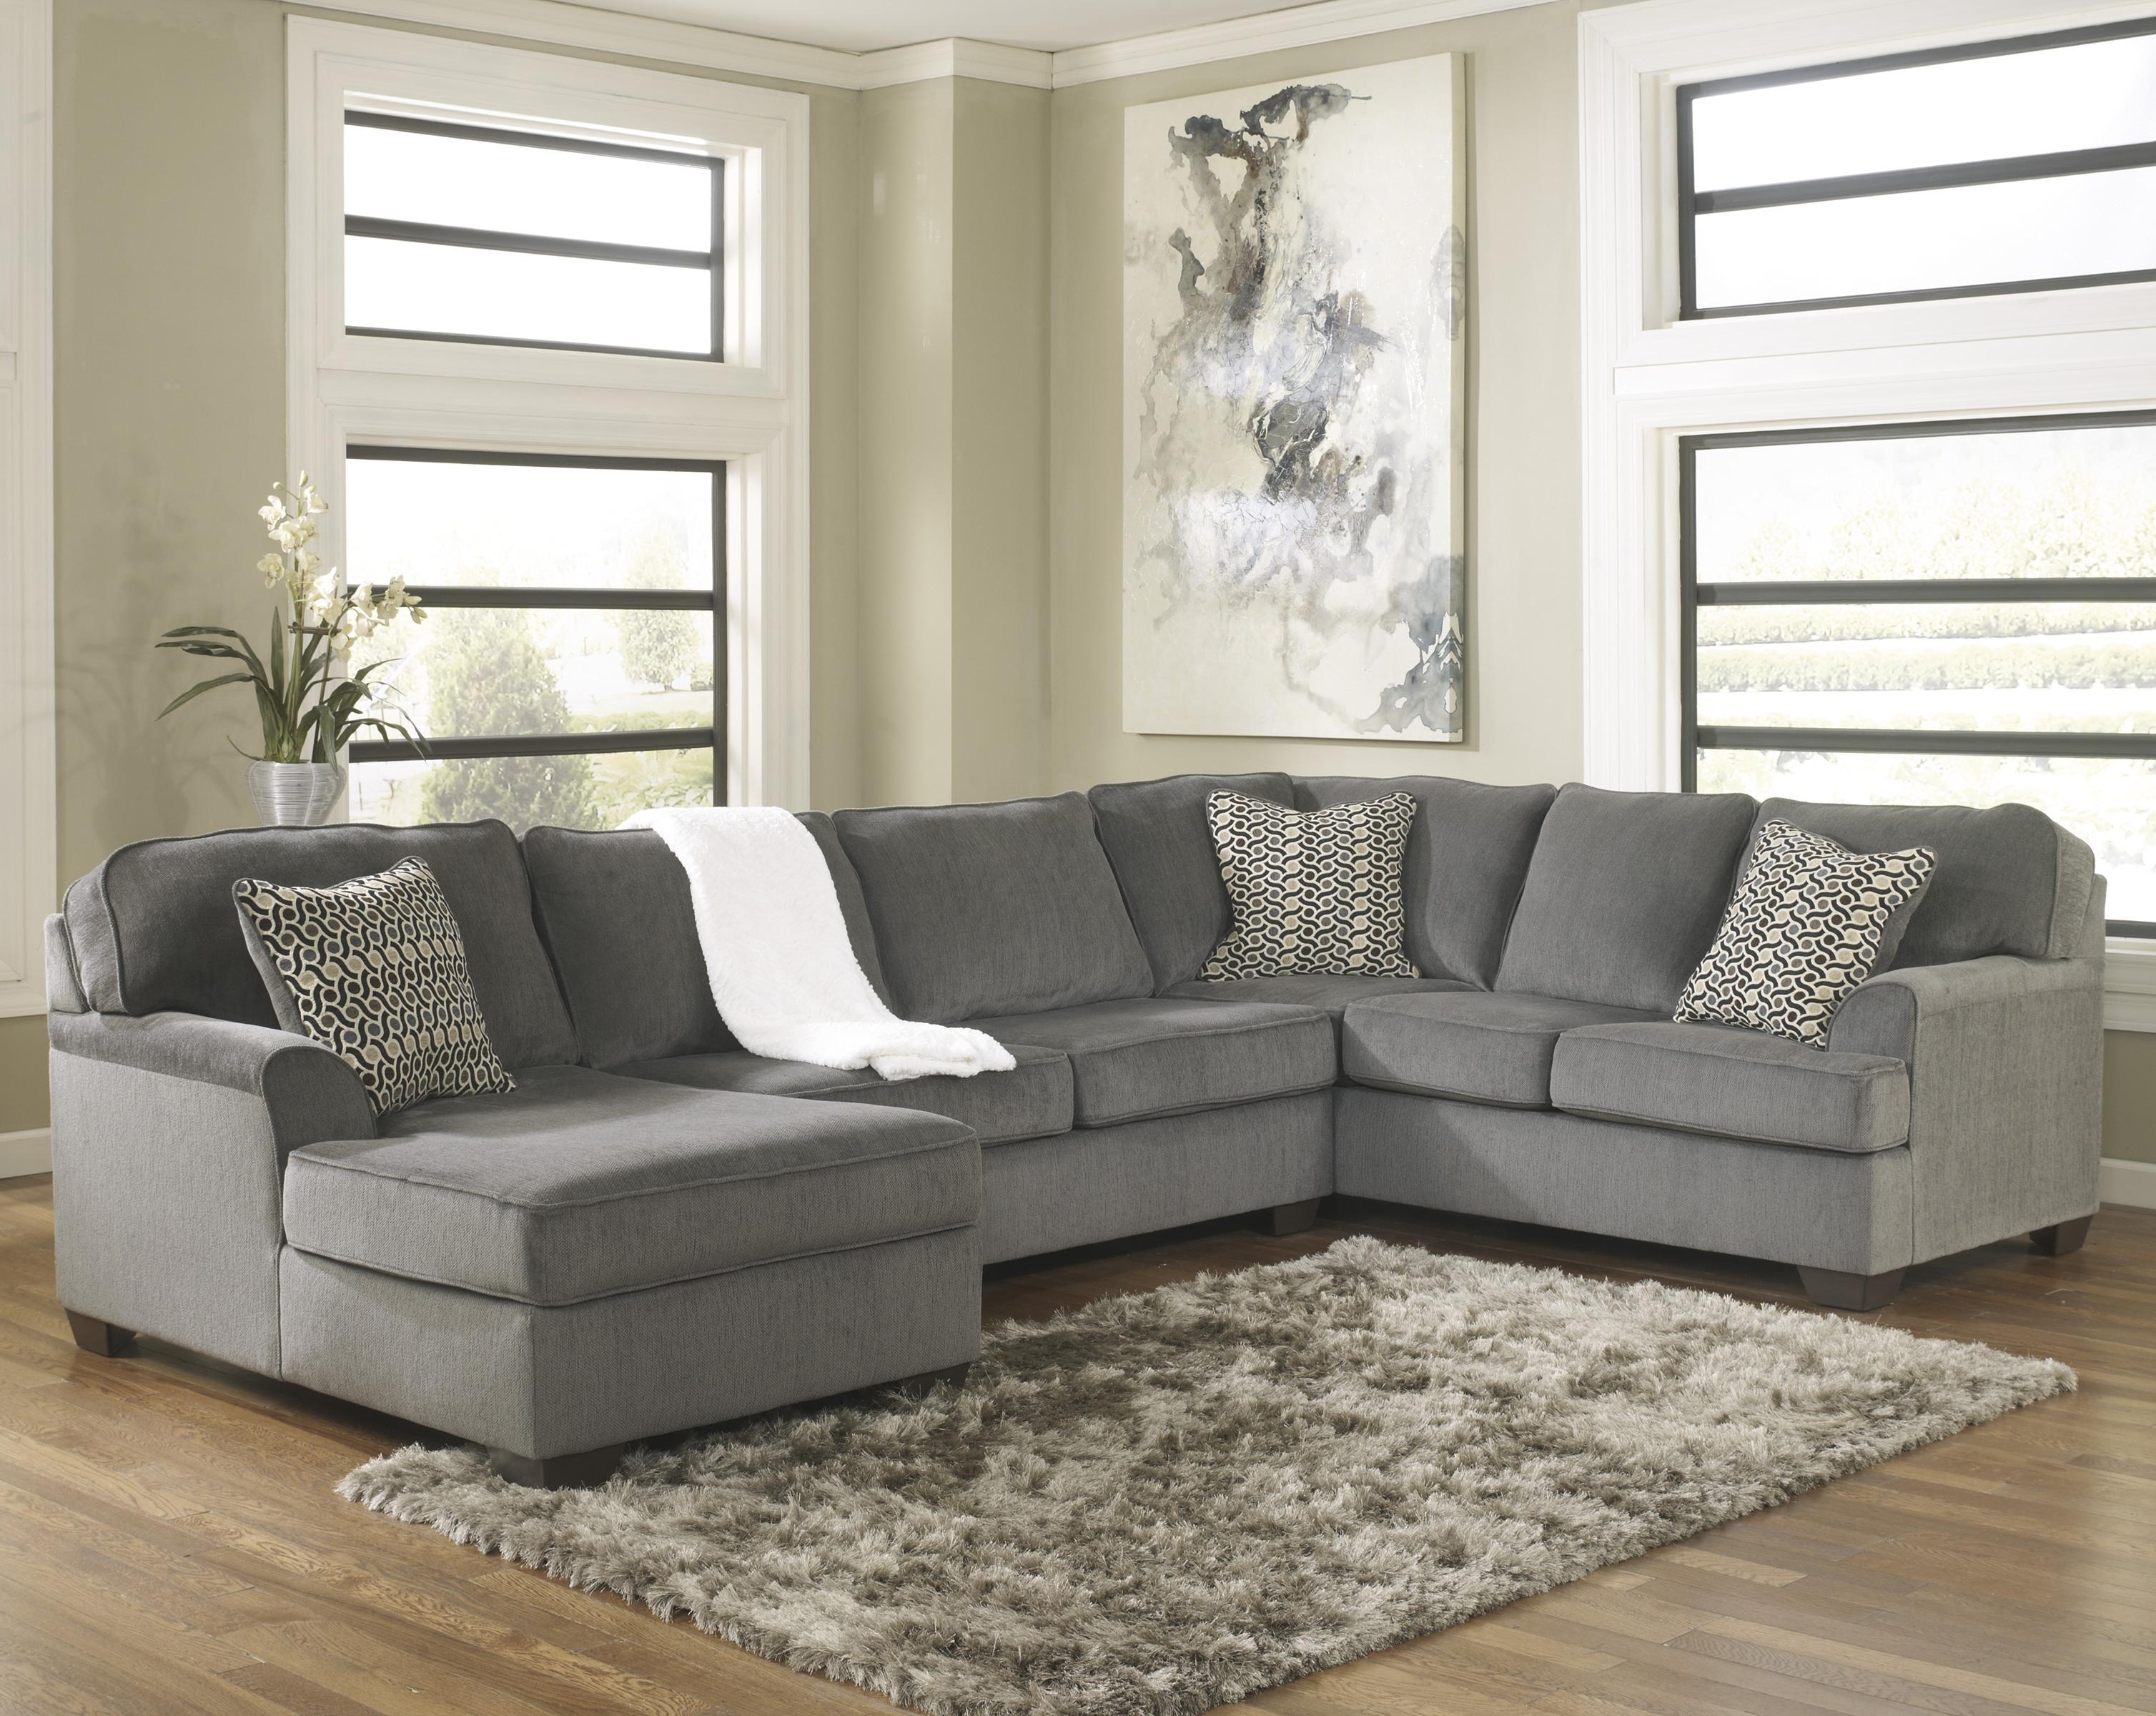 Ashley Furniture Loric – Smoke Contemporary 3 Piece Sectional With Regarding Well Liked 3 Piece Sectionals With Chaise (View 3 of 15)